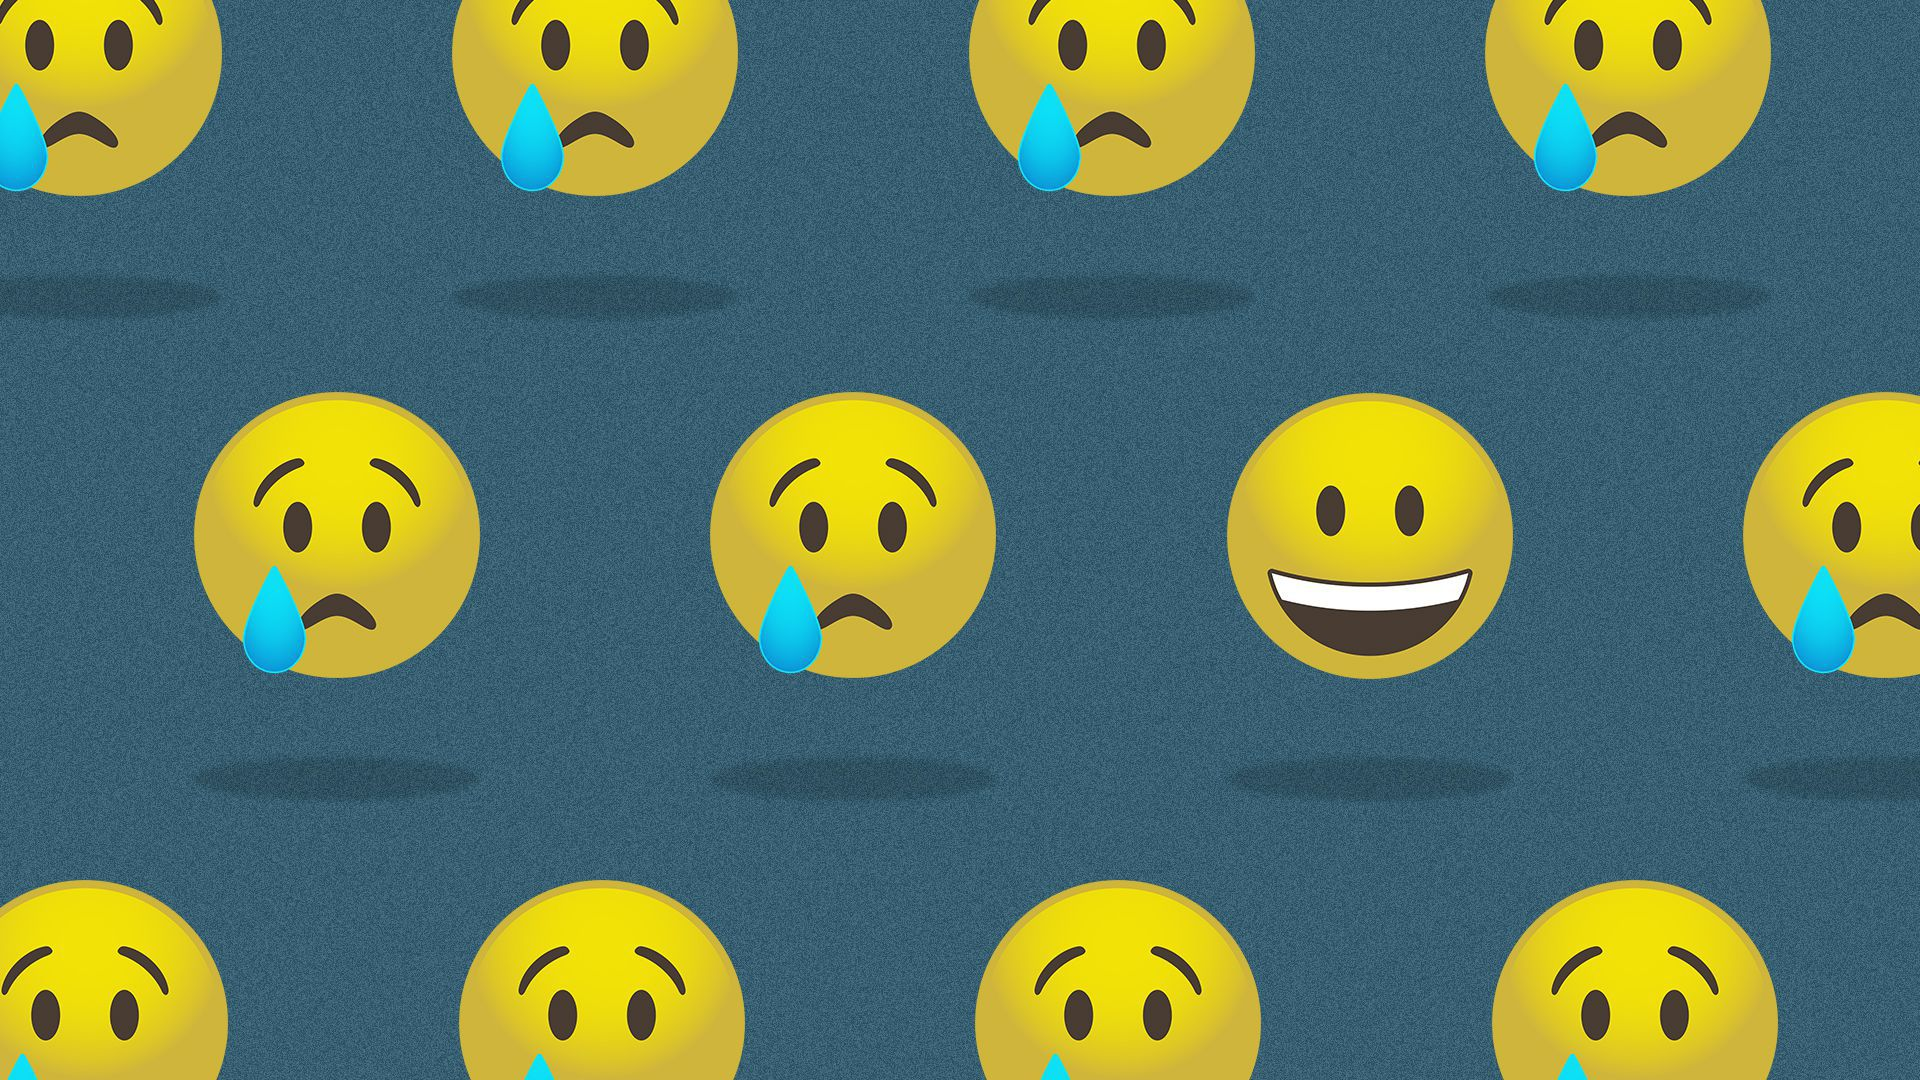 Illustration of a pattern of emojis, all of them crying, except one, which is smiling.